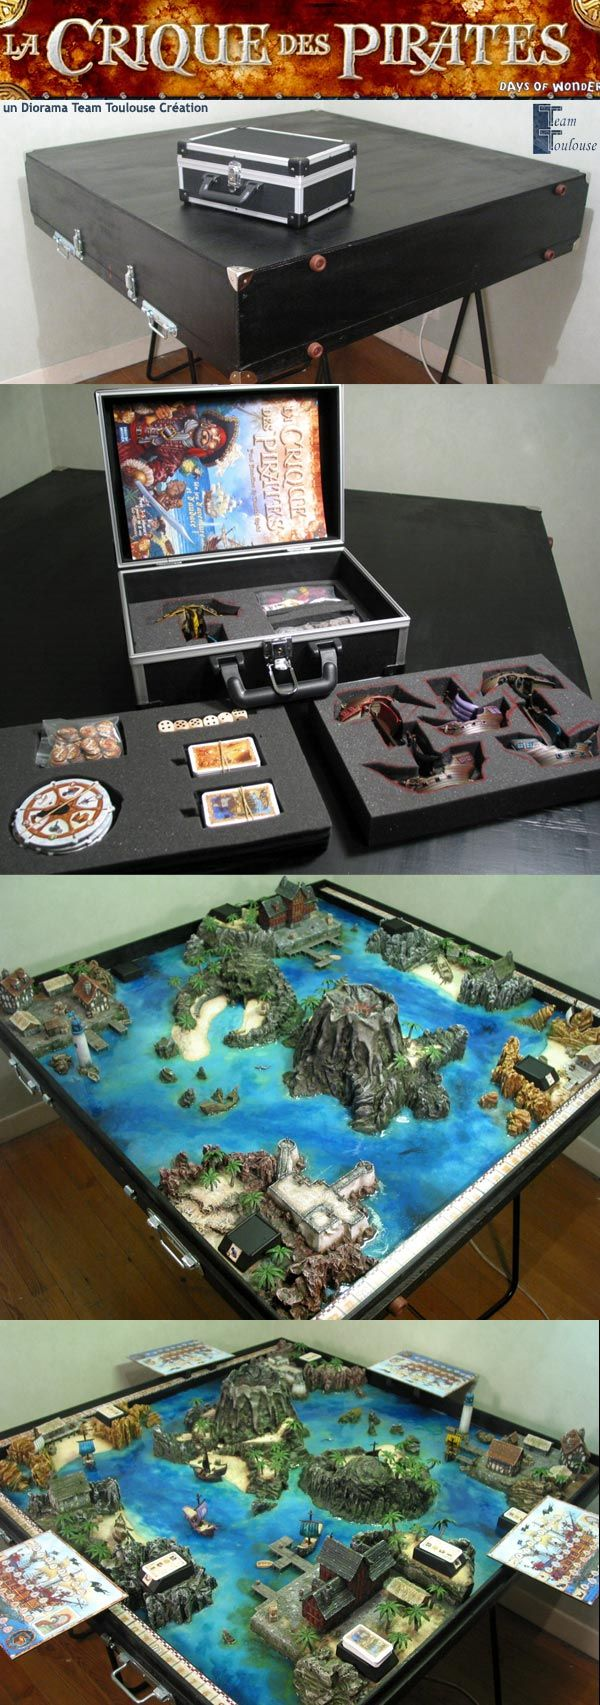 a game called the pirates cove